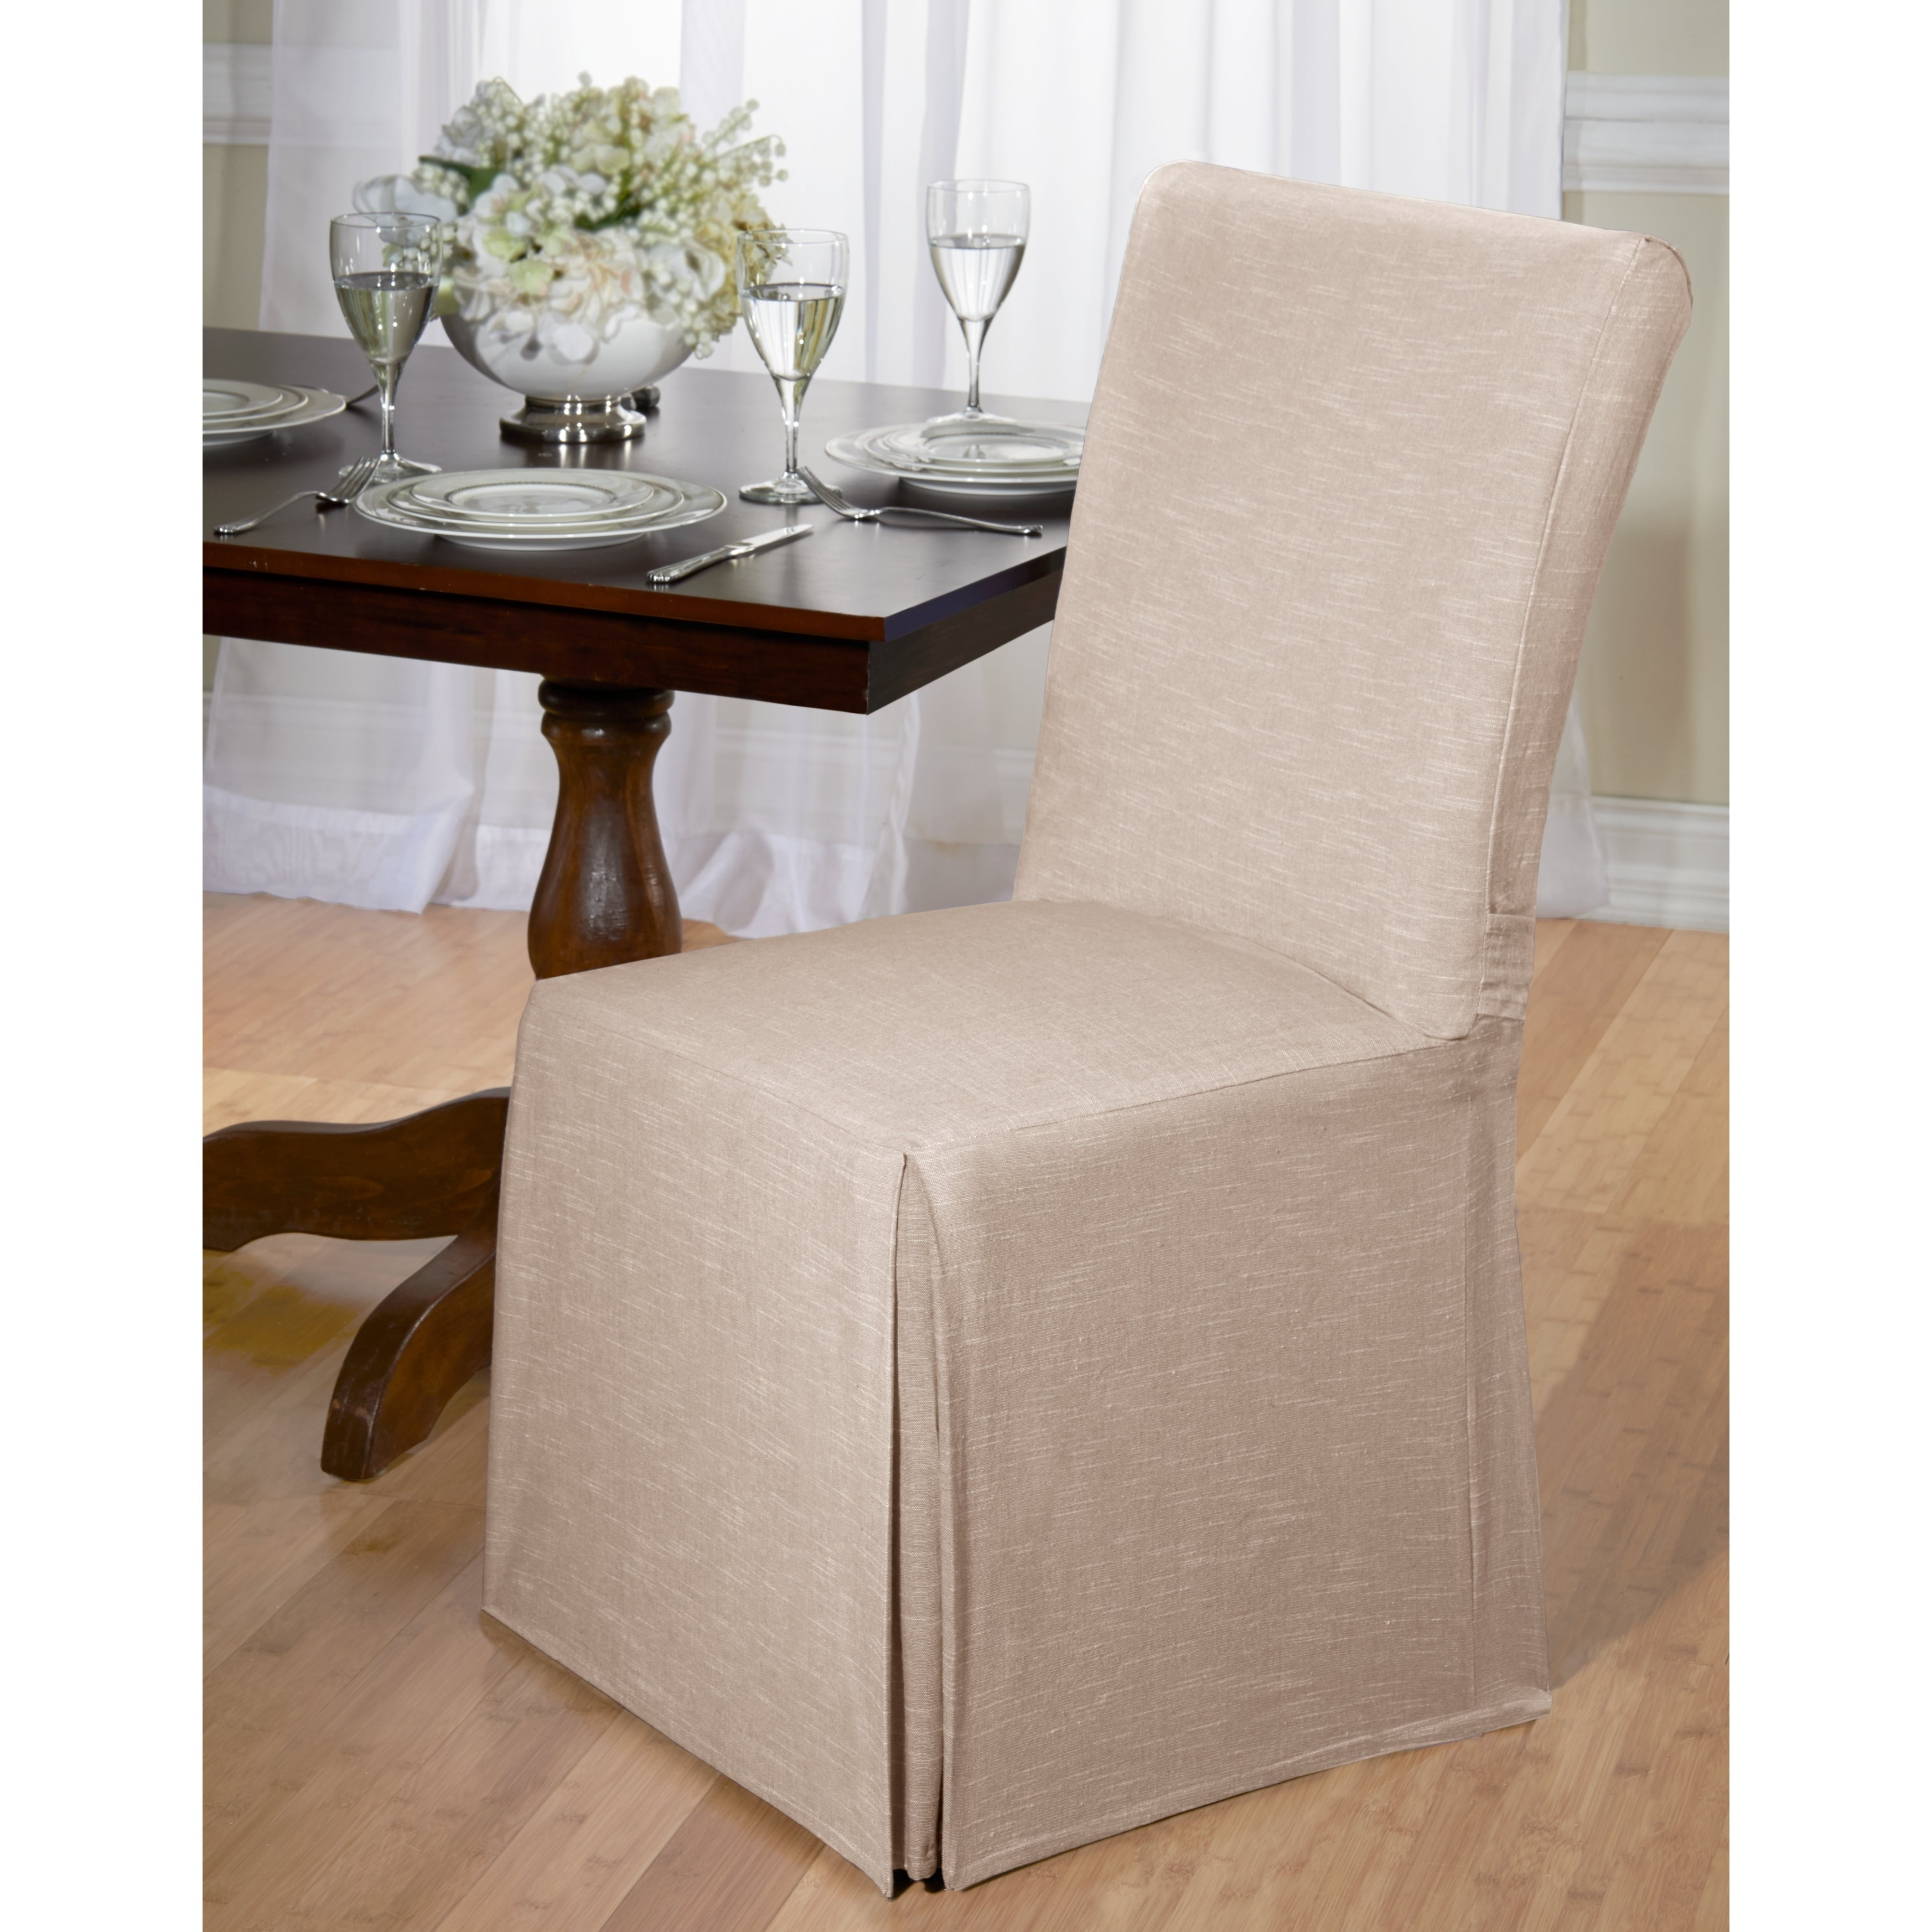 Chair Covers Slipcovers Online At Our Best